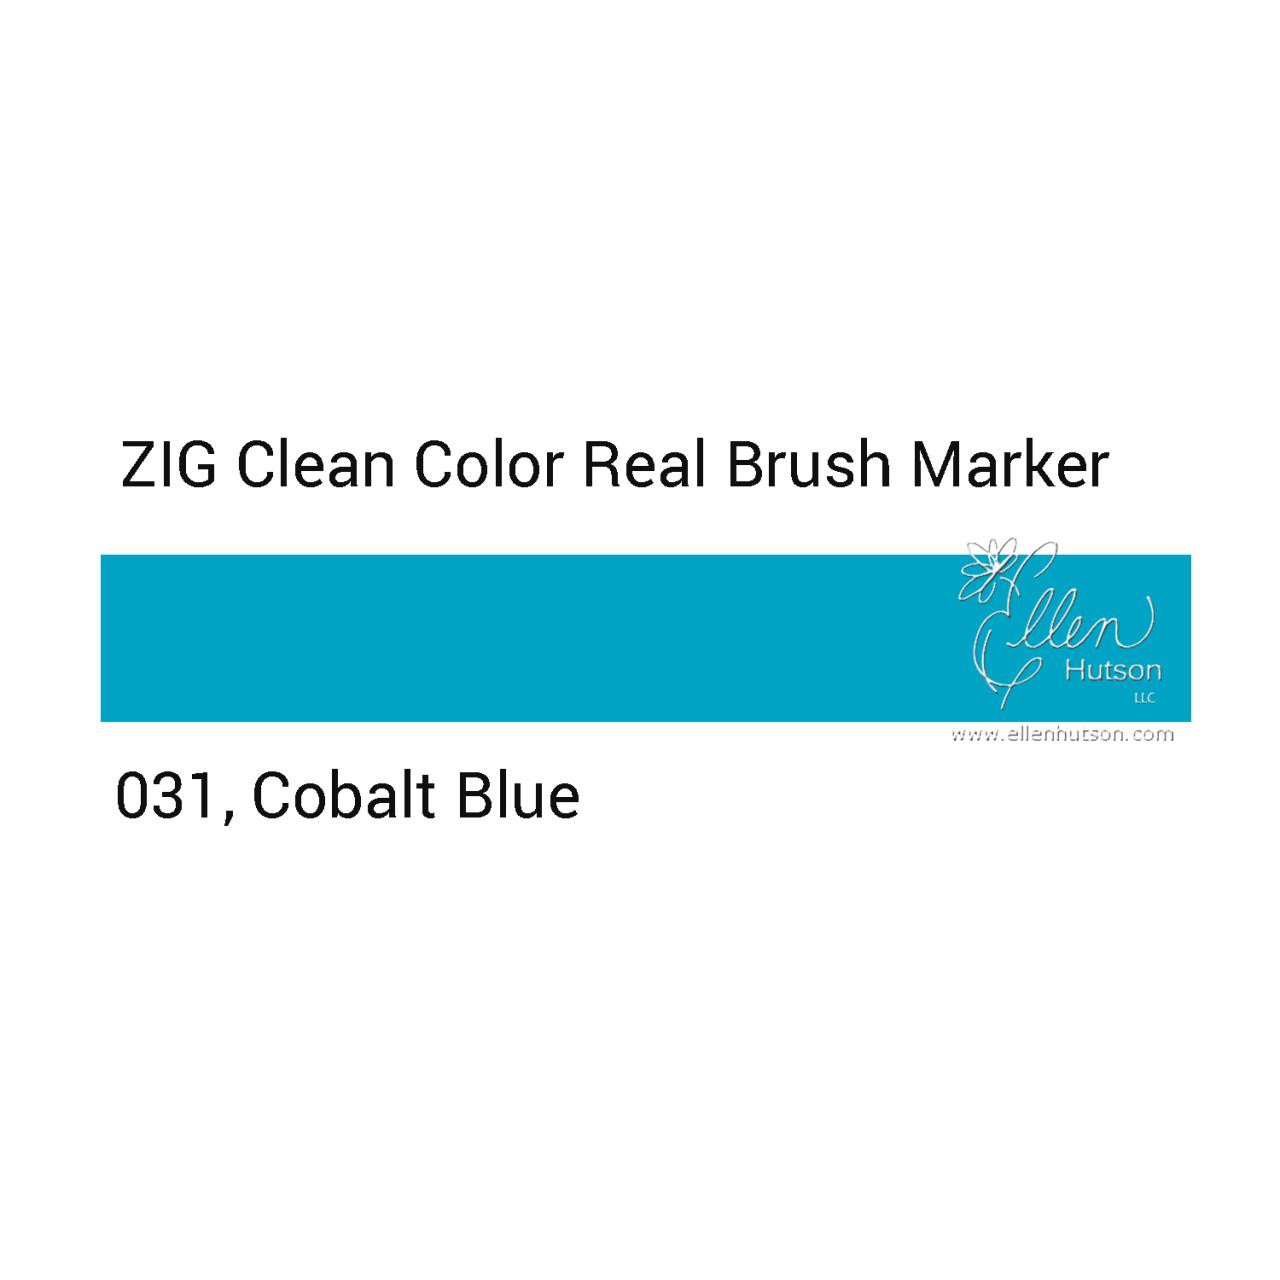 031 - Cobalt Blue, ZIG Clean Color Real Brush Marker -